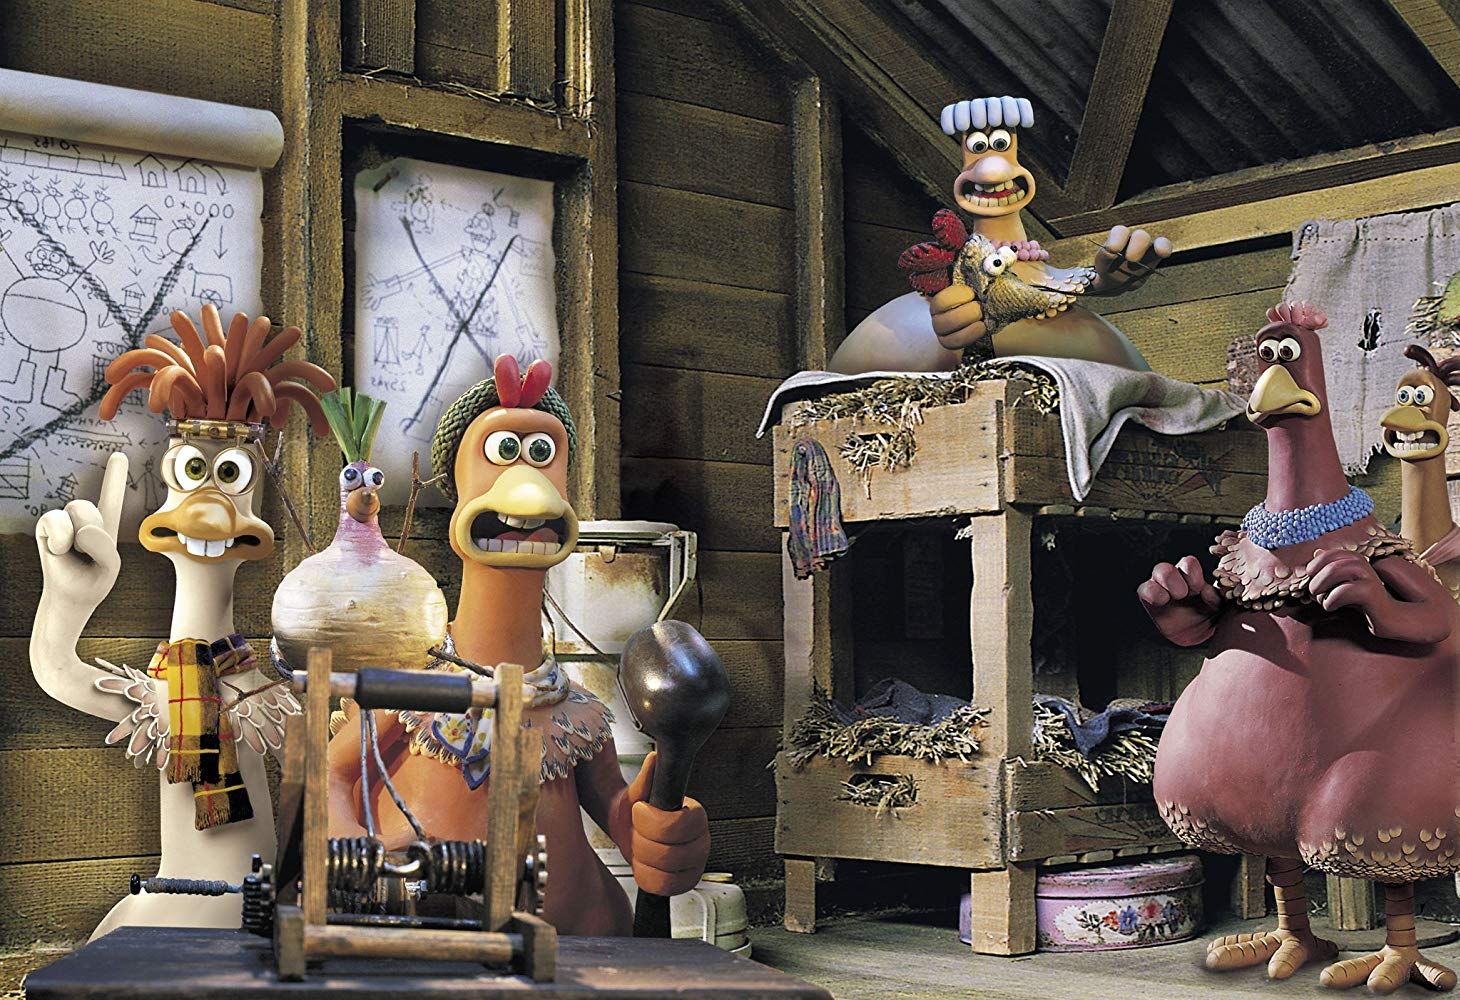 Parody of a WWII escape movie conducted with talking chickens in Chicken Run (2000)